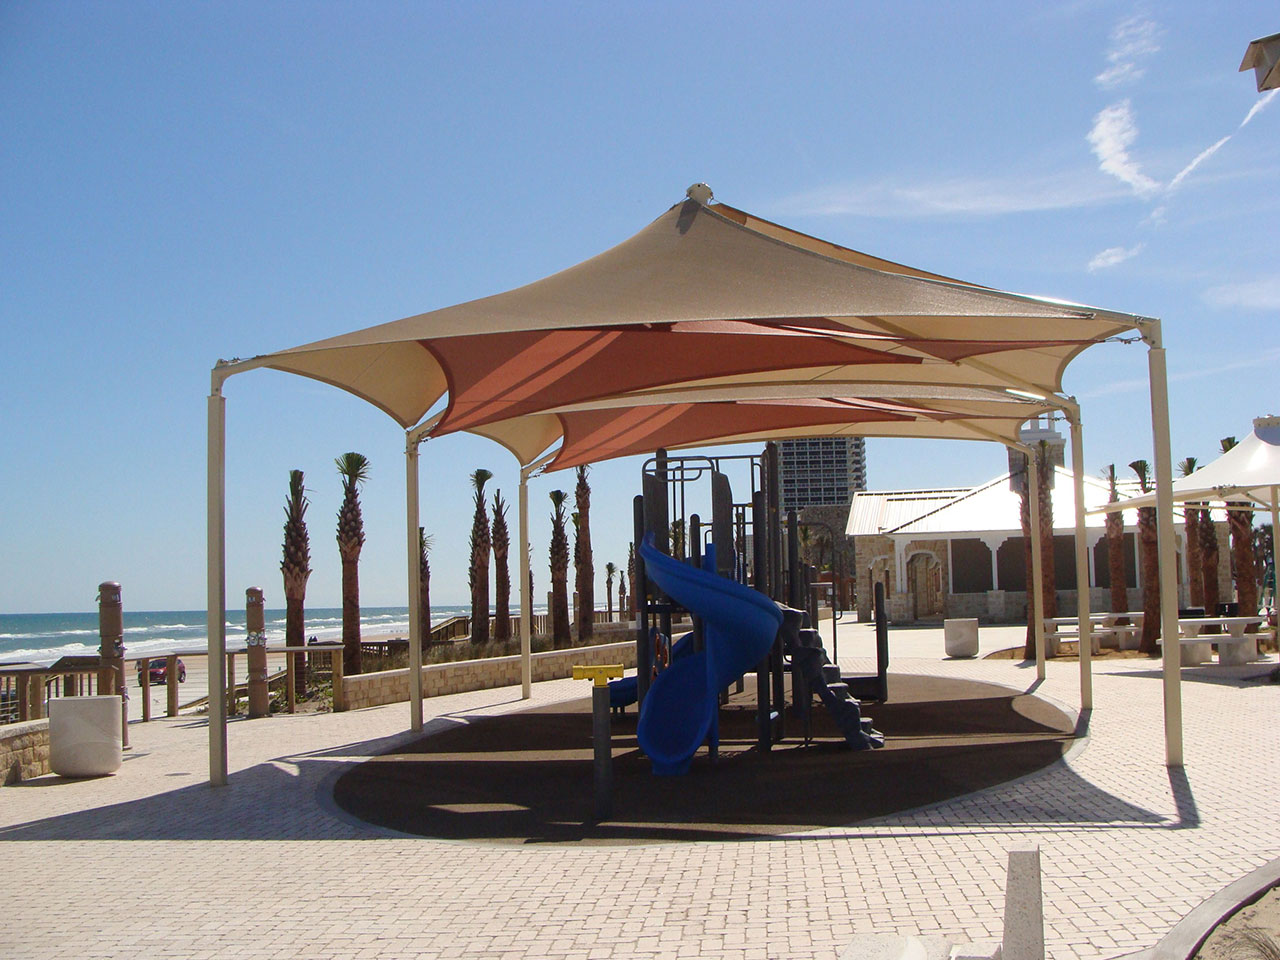 Andy Romano Beachfront Park